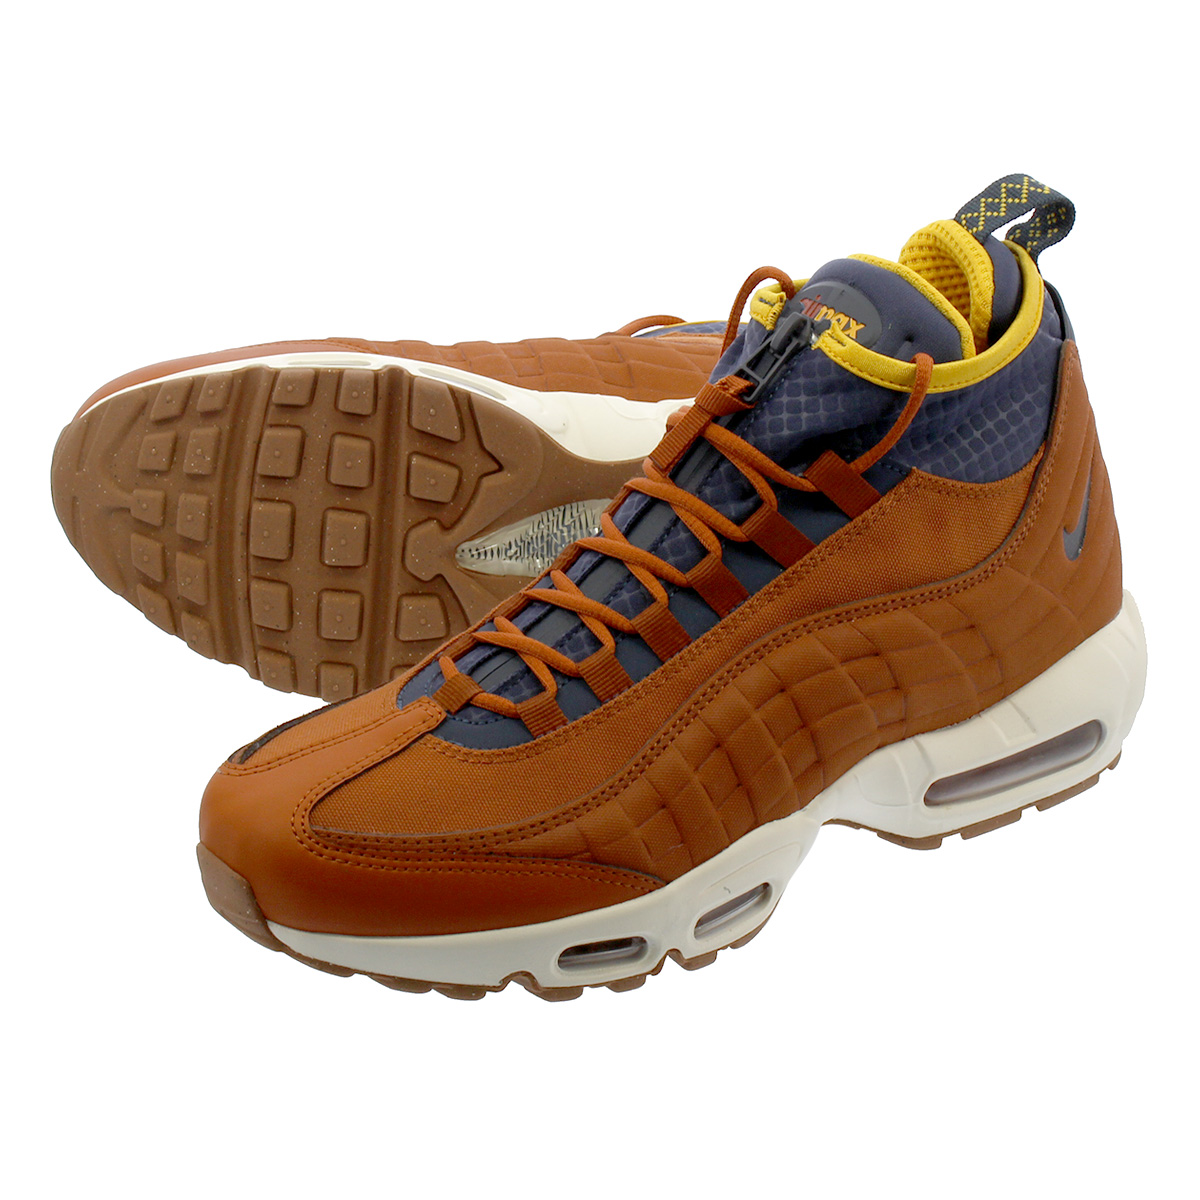 7f4363a5f7 ... coupon code for nike air max 95 sneakerboot kie ney amax 95 sneakers  boots dark russet ...